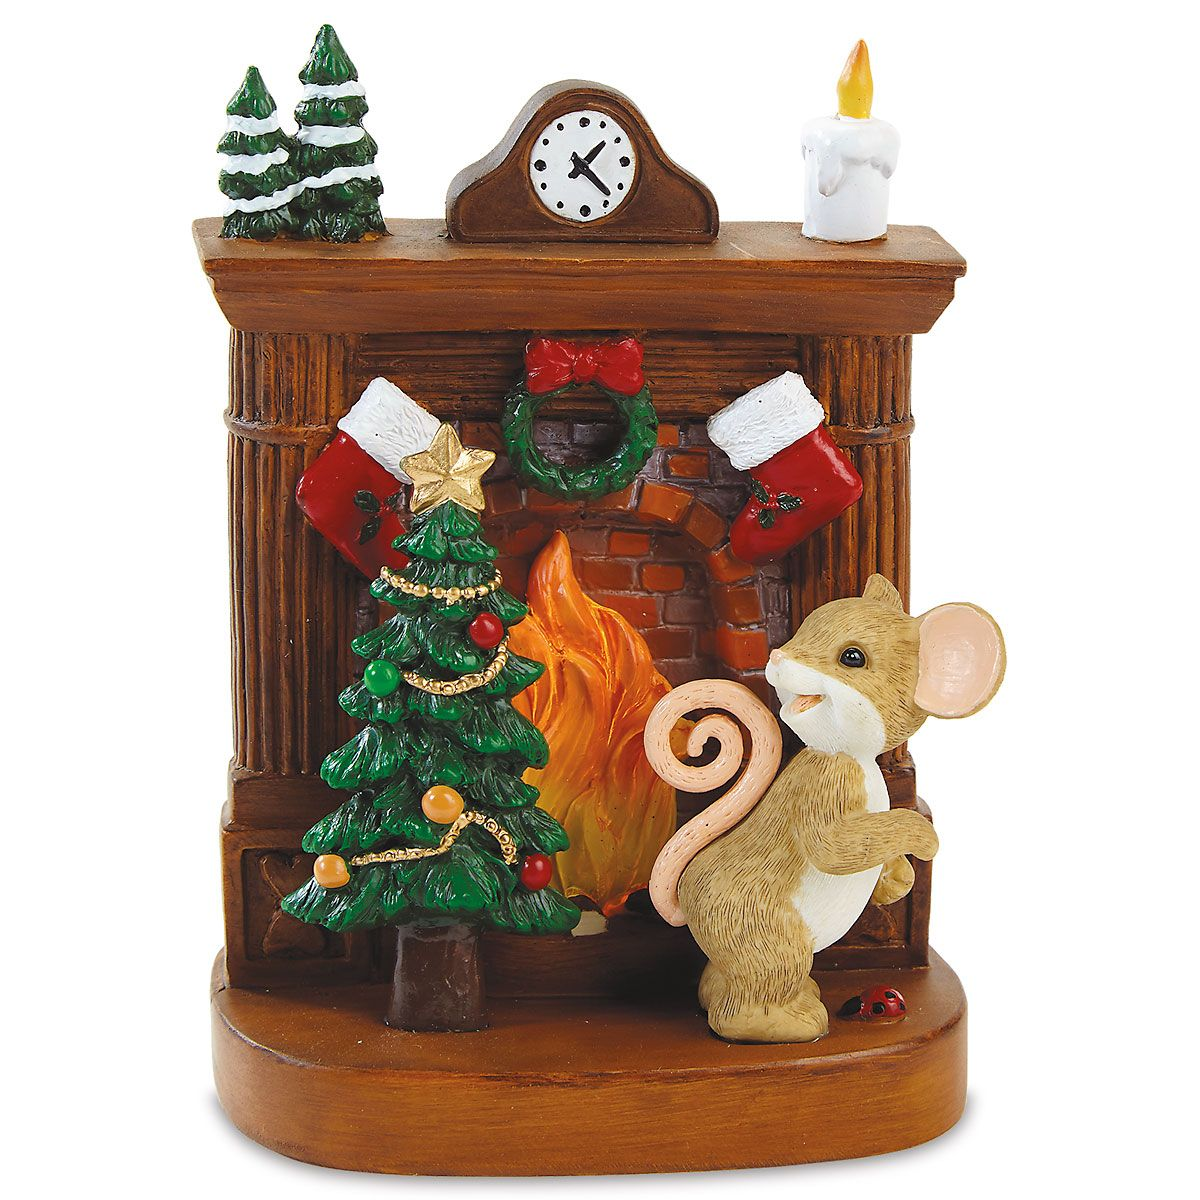 Mouse Lighted Fireplace by Charming Tails®